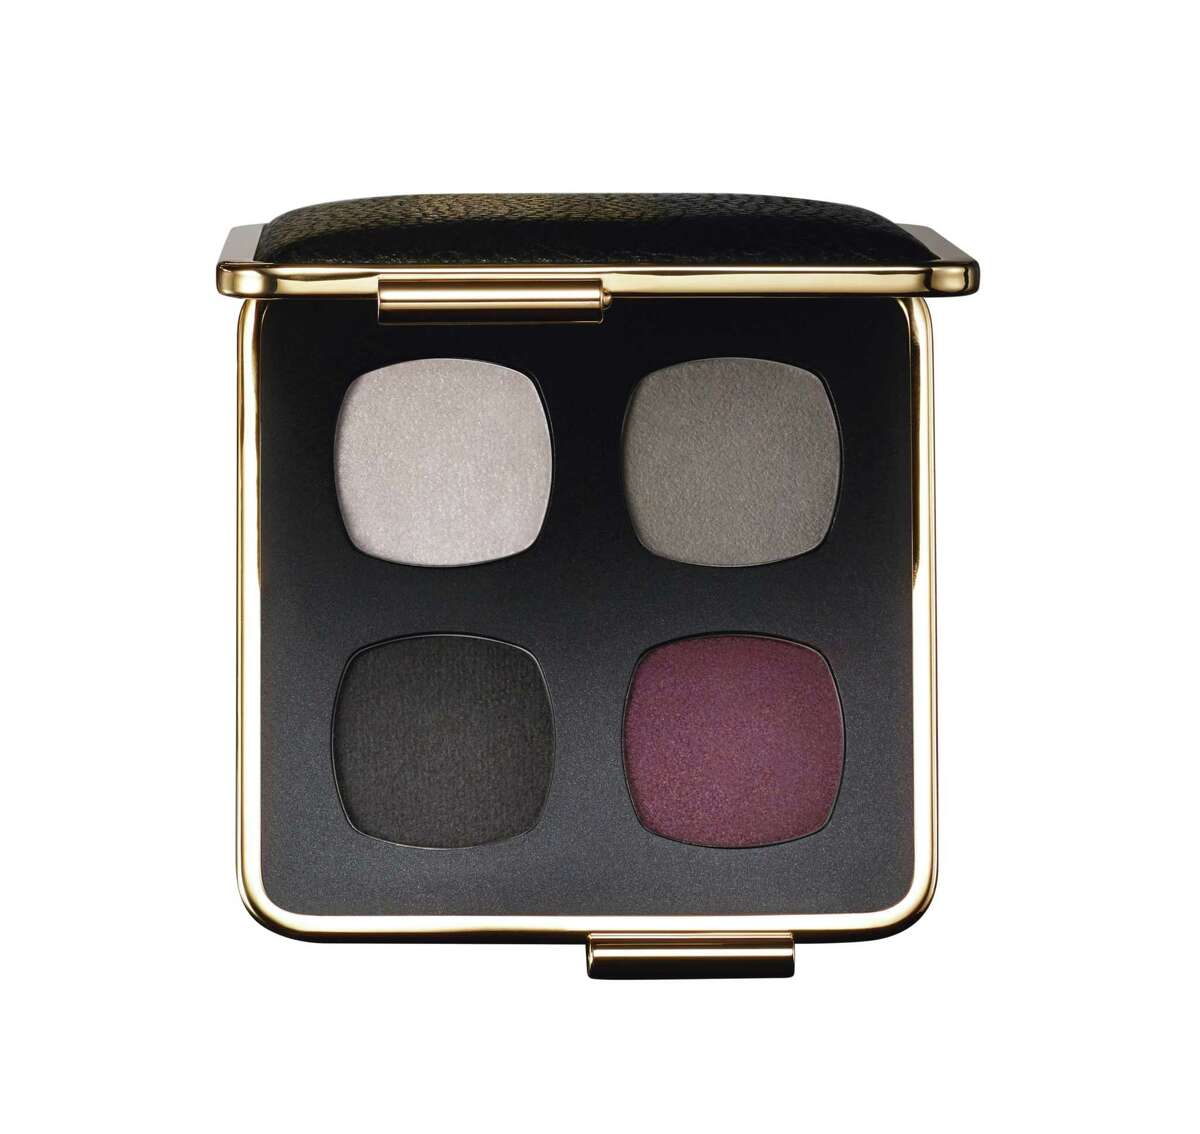 Victoria Beckham's second makeup collection for Estee Lauder includes Victoria Beckham Eye Palette is tones of grey smoke and bordeaux.